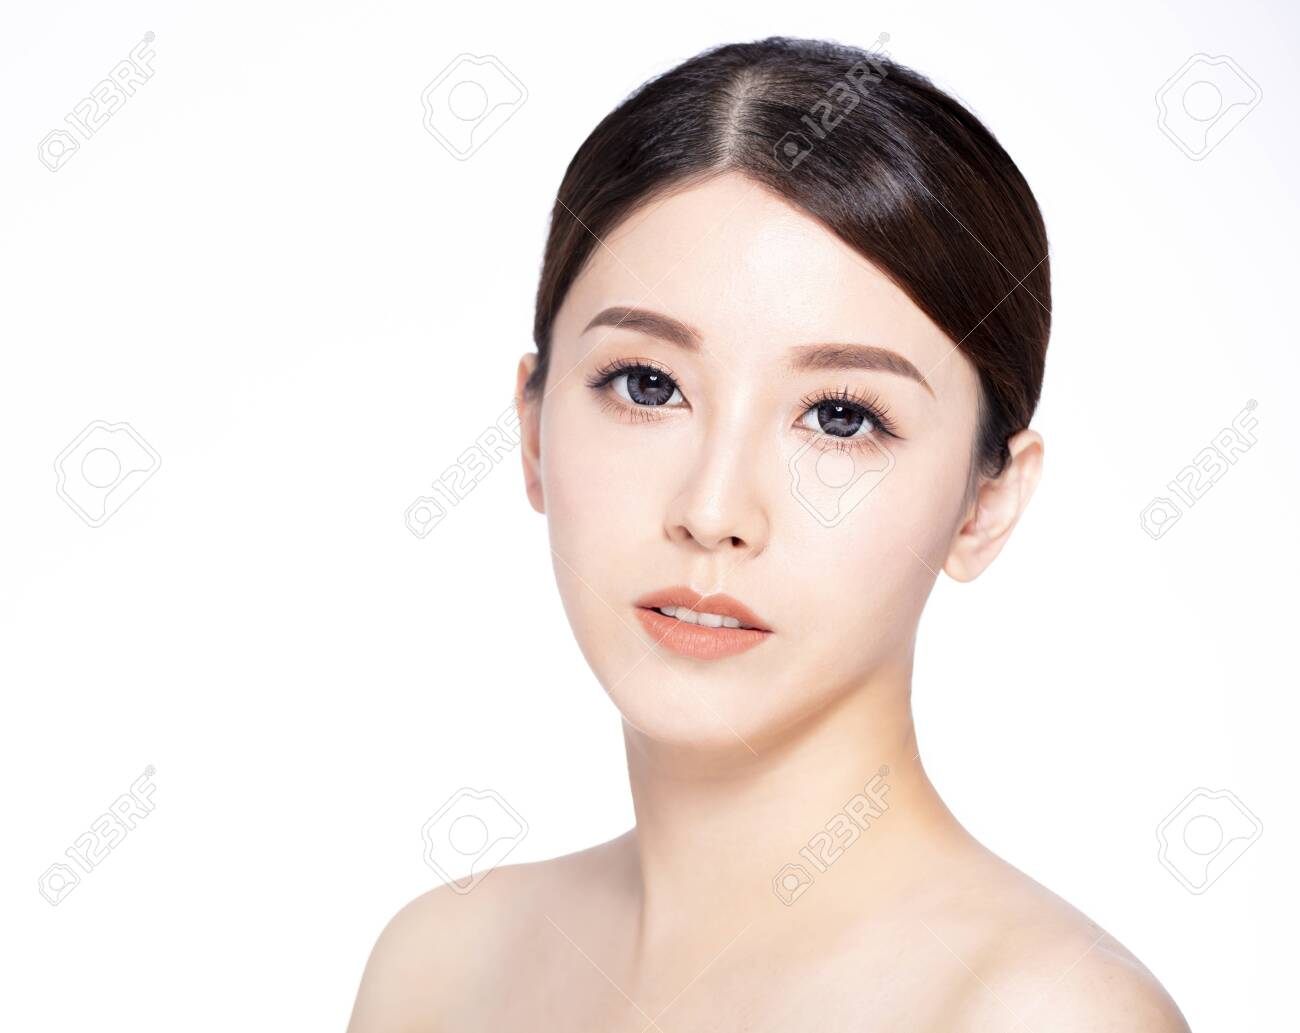 closeup young beauty face with clean fresh skin - 146946719